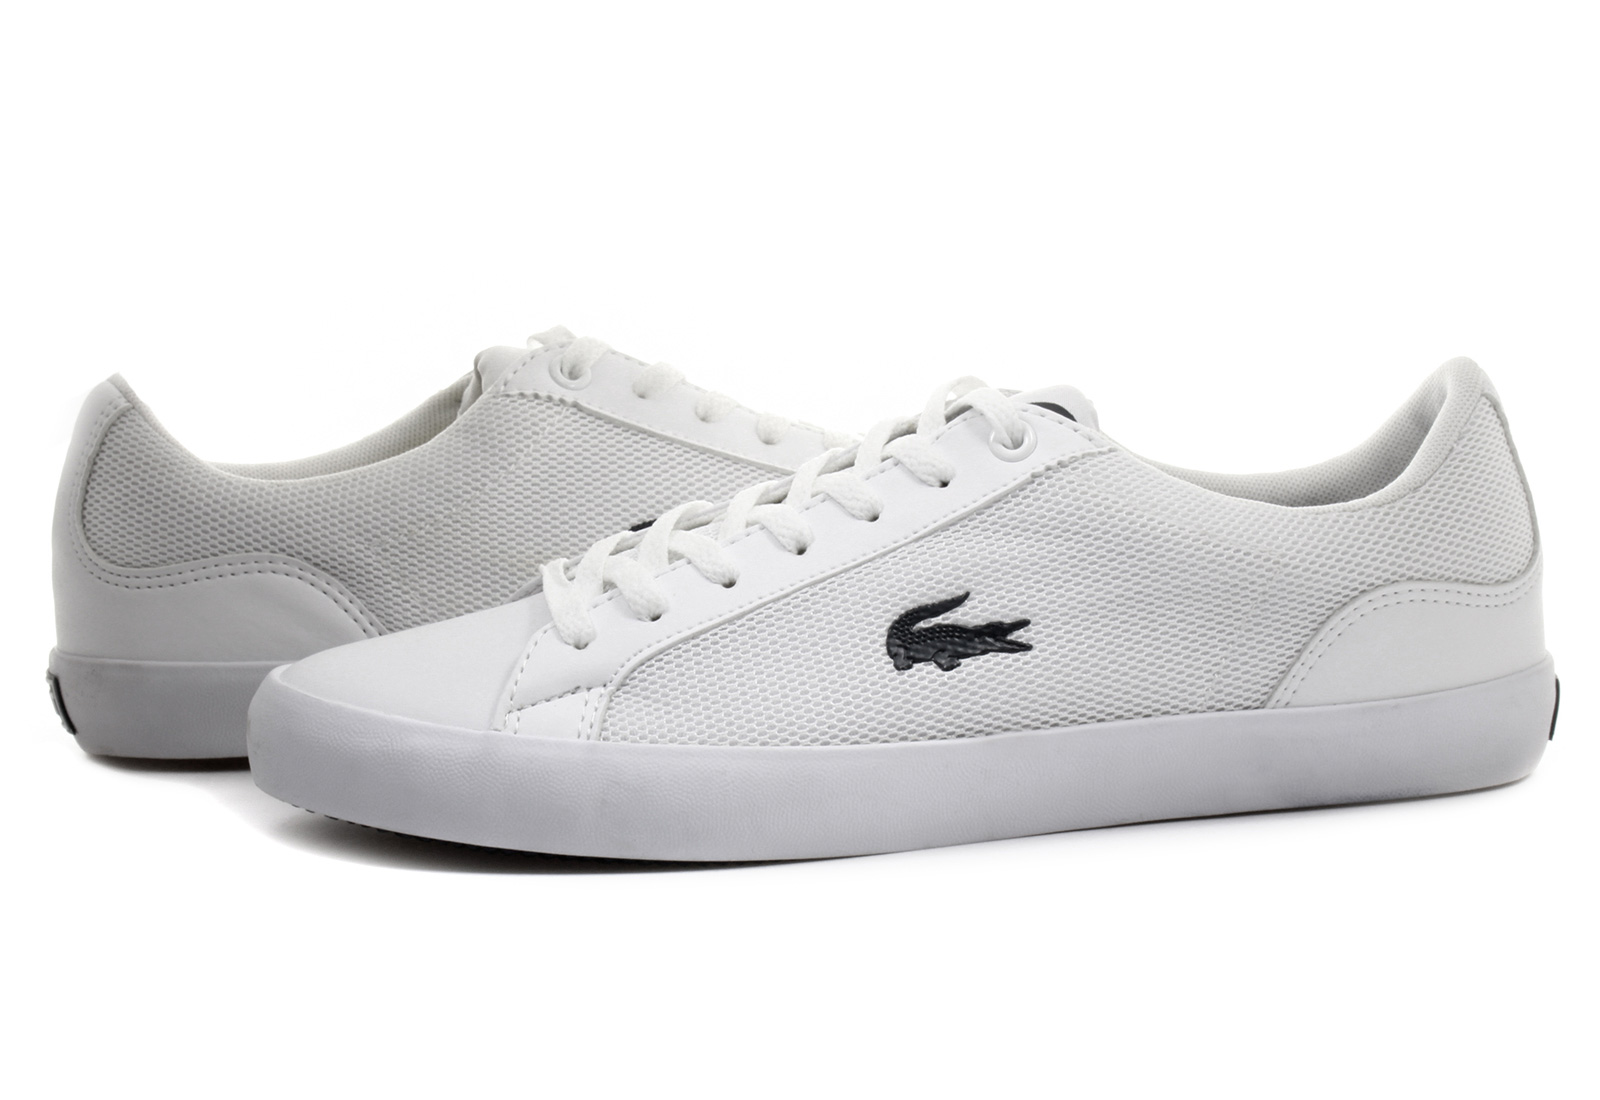 daa960a5a4ae Lacoste Shoes - Cresion - 141scm1003-042 - Online shop for ...